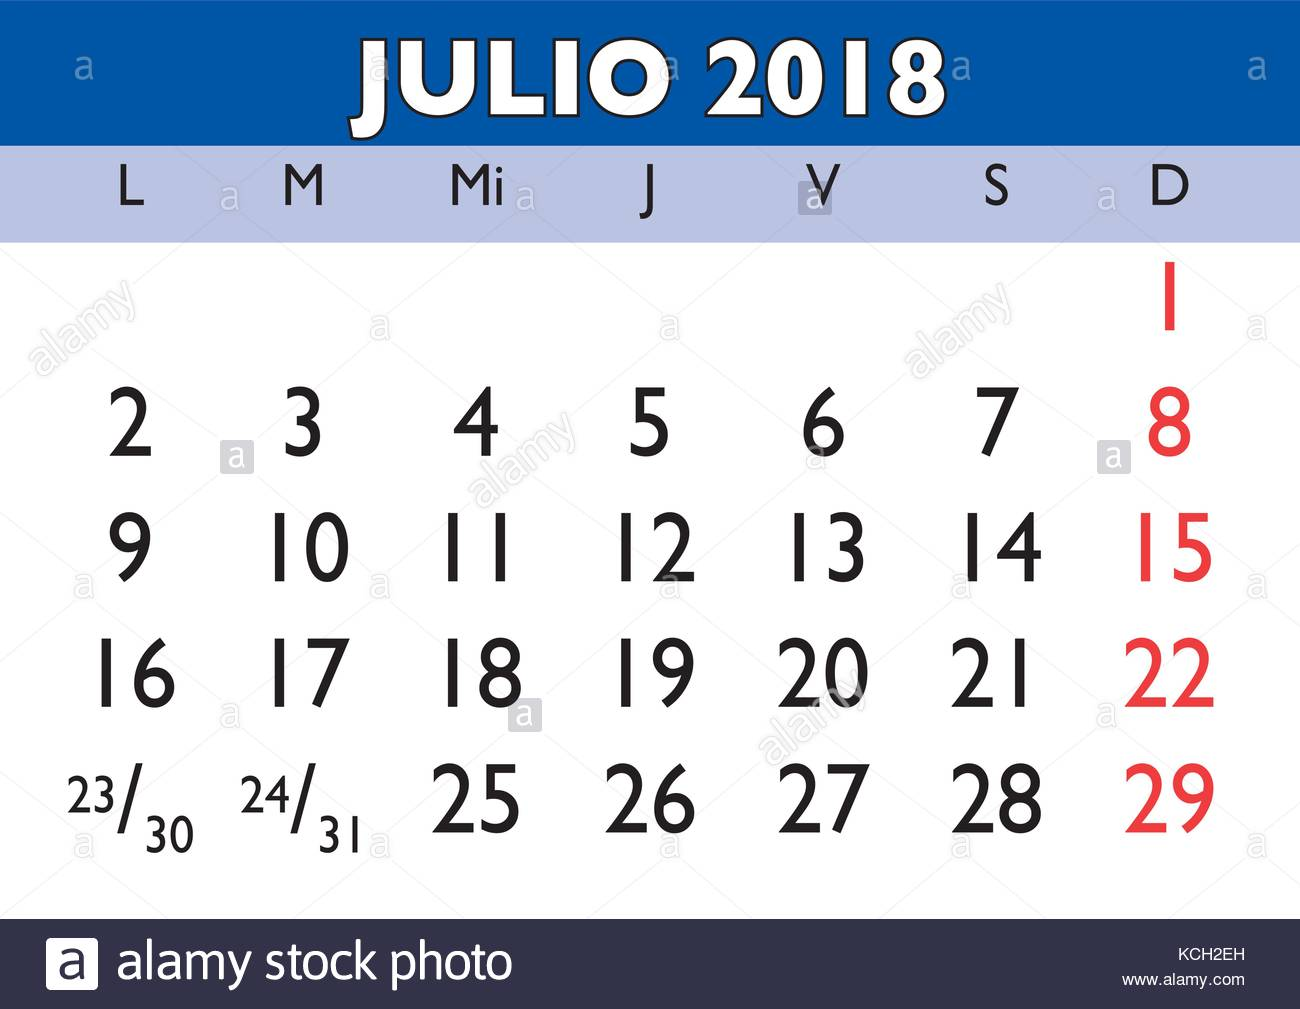 july month in a year 2018 wall calendar in spanish julio 2018 calendario KCH2EH